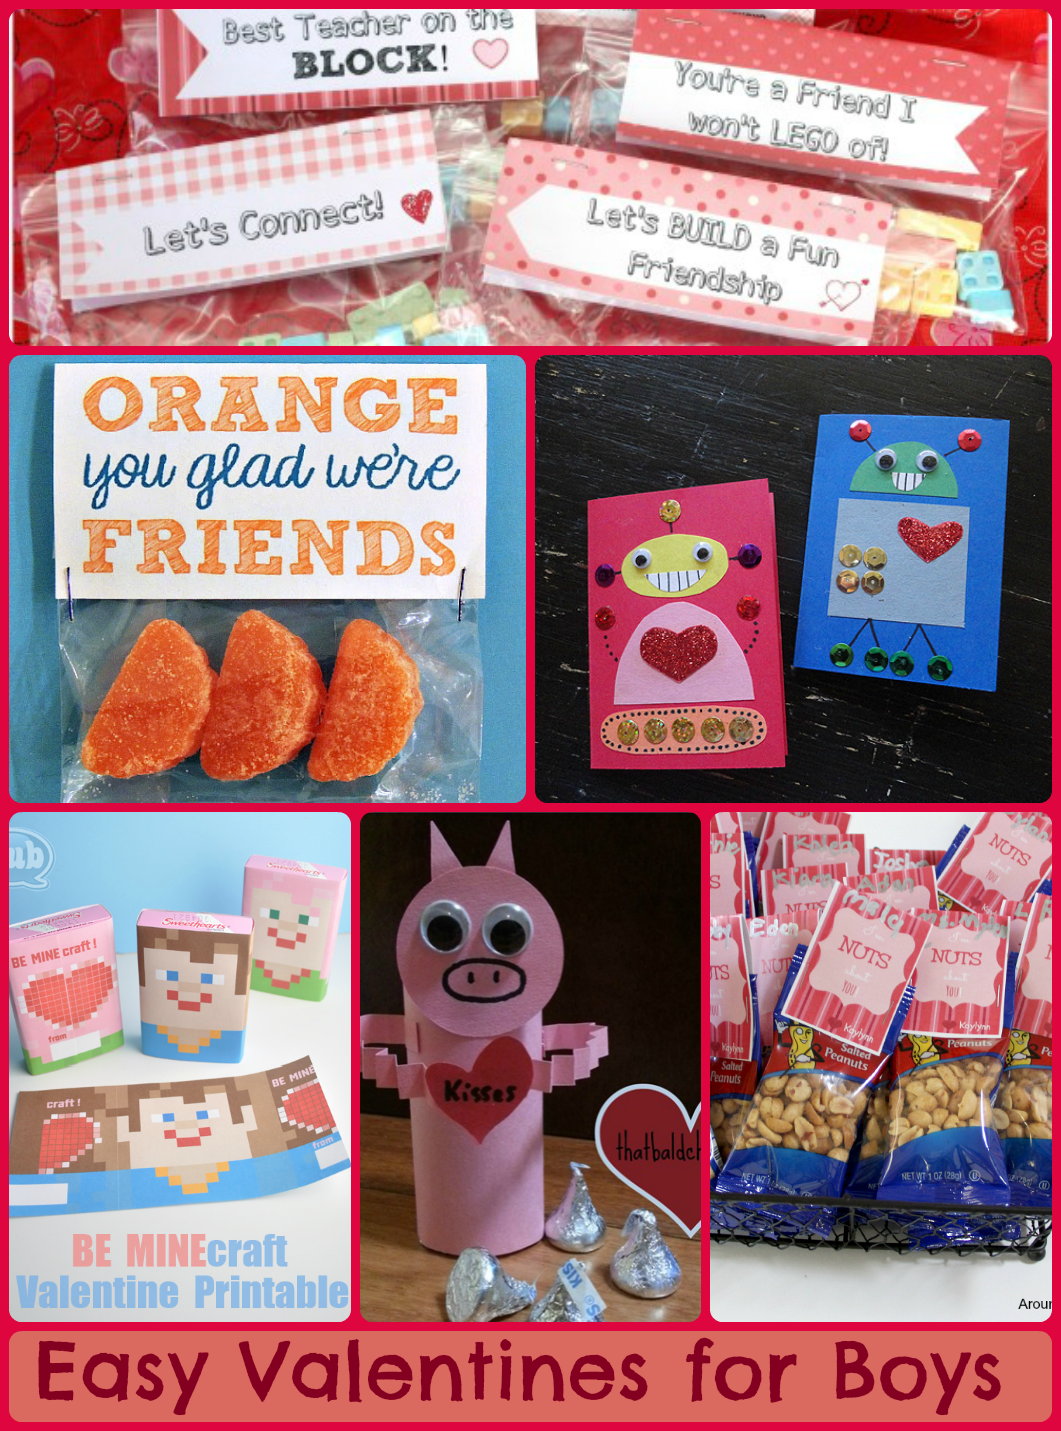 Easy Valentine's Ideas that are not sappy and will appeal to boys